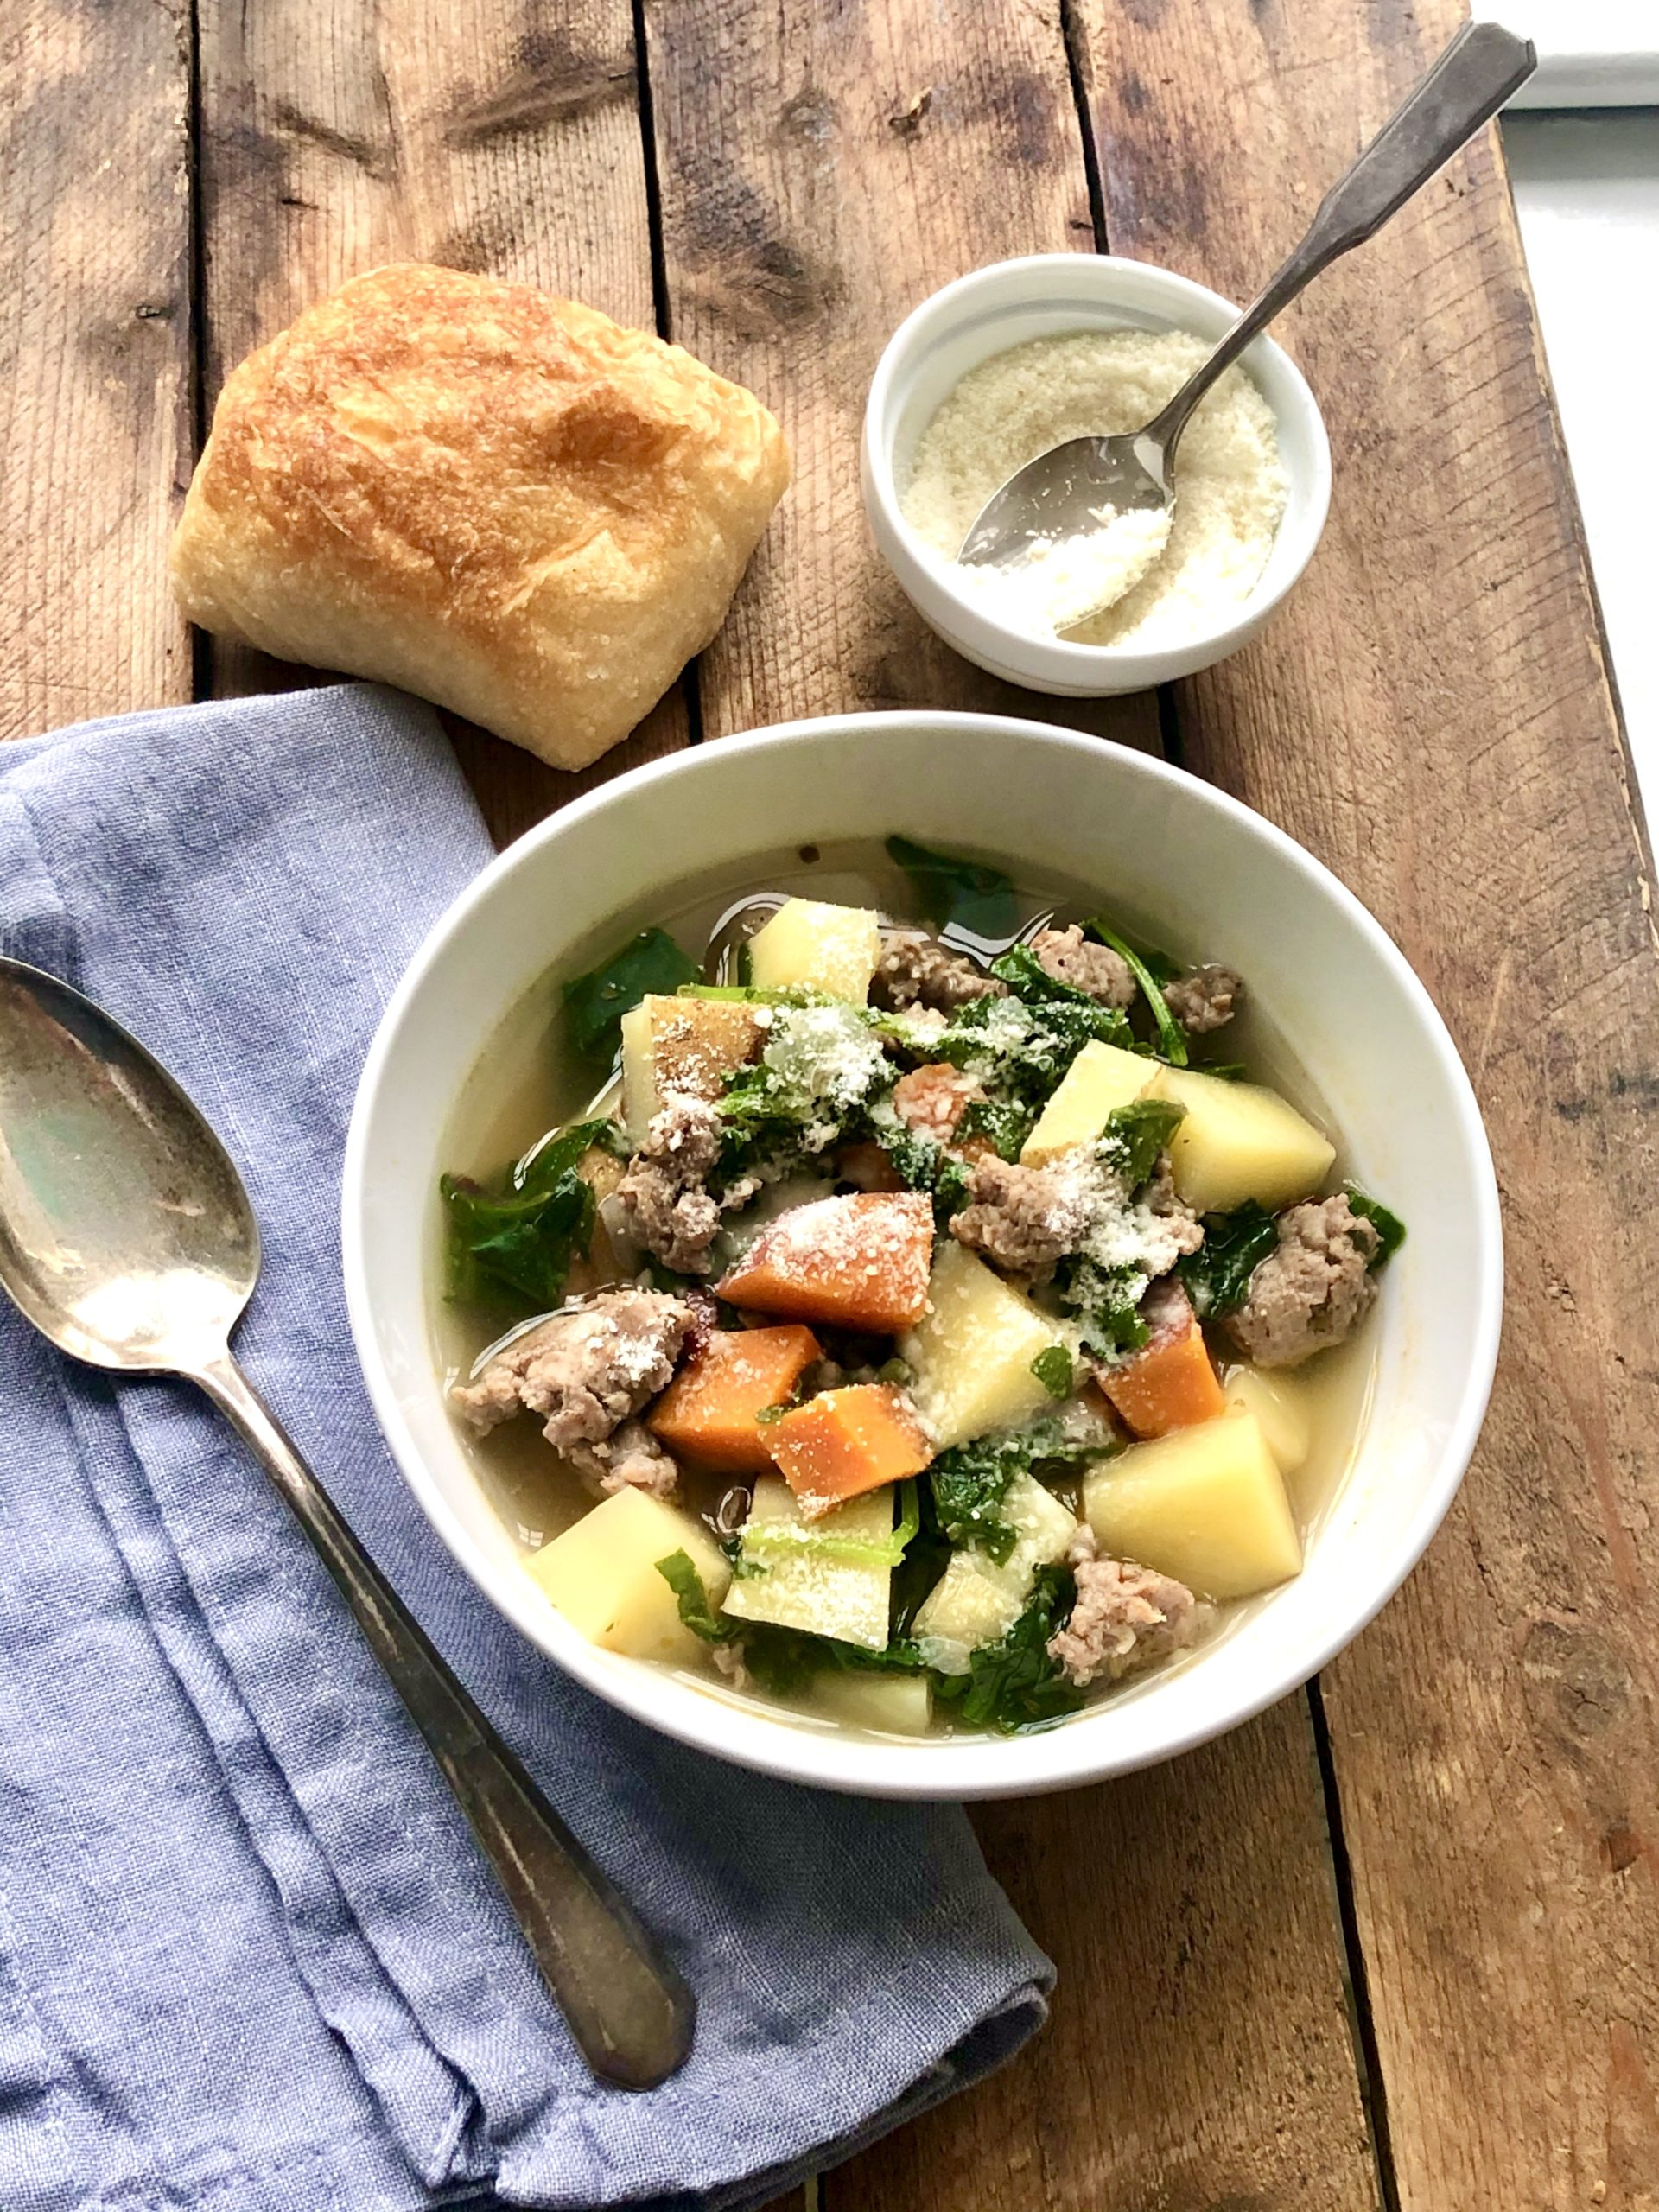 Quick to make with minimal ingredients, this soup is comfort food that pulls double duty as a complete, nourishing meal. Perfect for the weekly rotation with built-in flexibility!